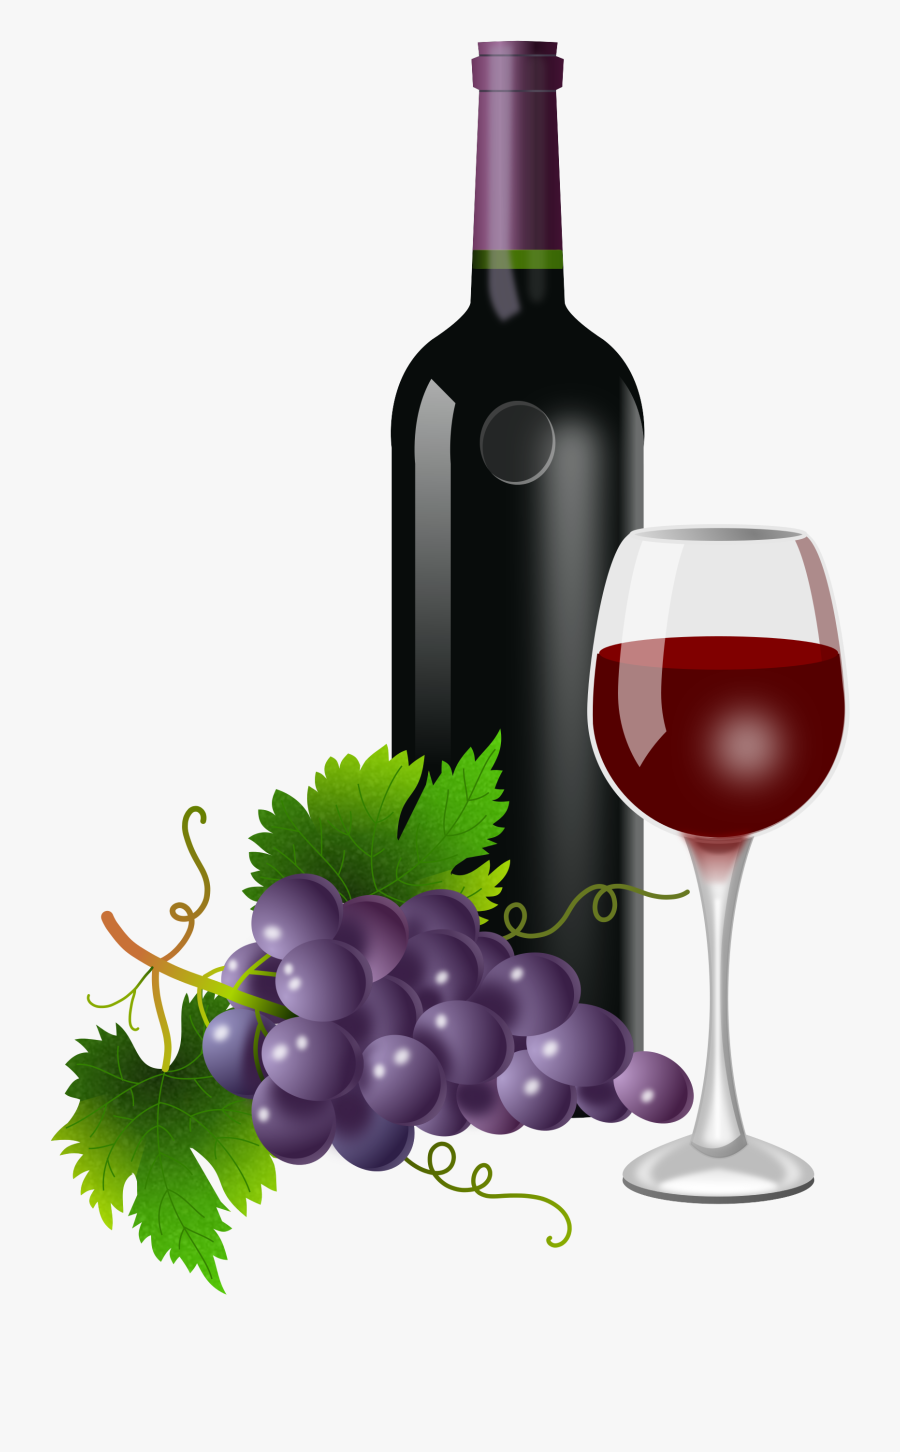 Wine Clipart Bottle - Wine And Grapes Png, Transparent Clipart